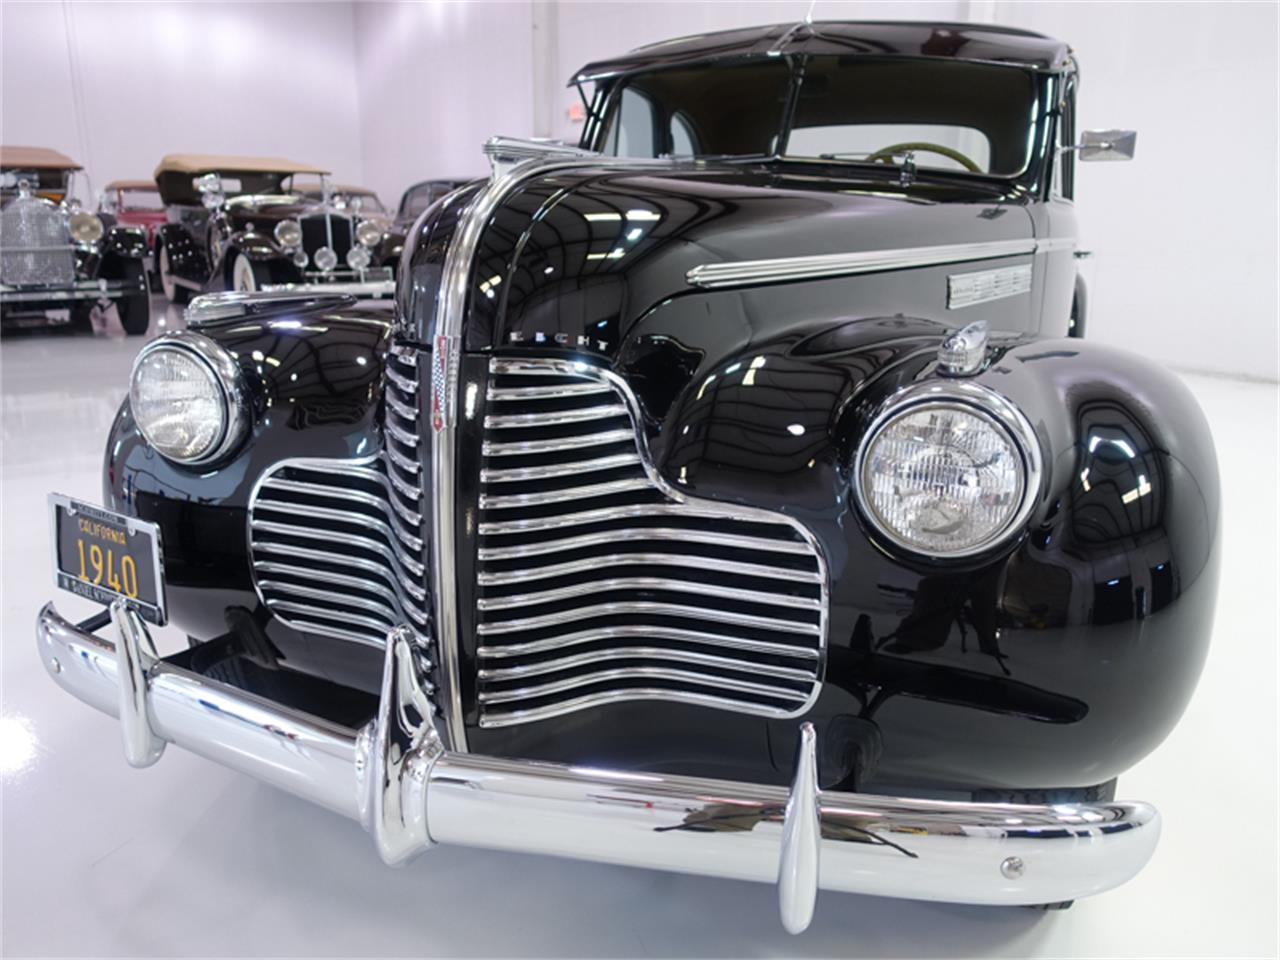 Large Picture of 1940 Buick Special Offered by Daniel Schmitt & Co. - P6N9